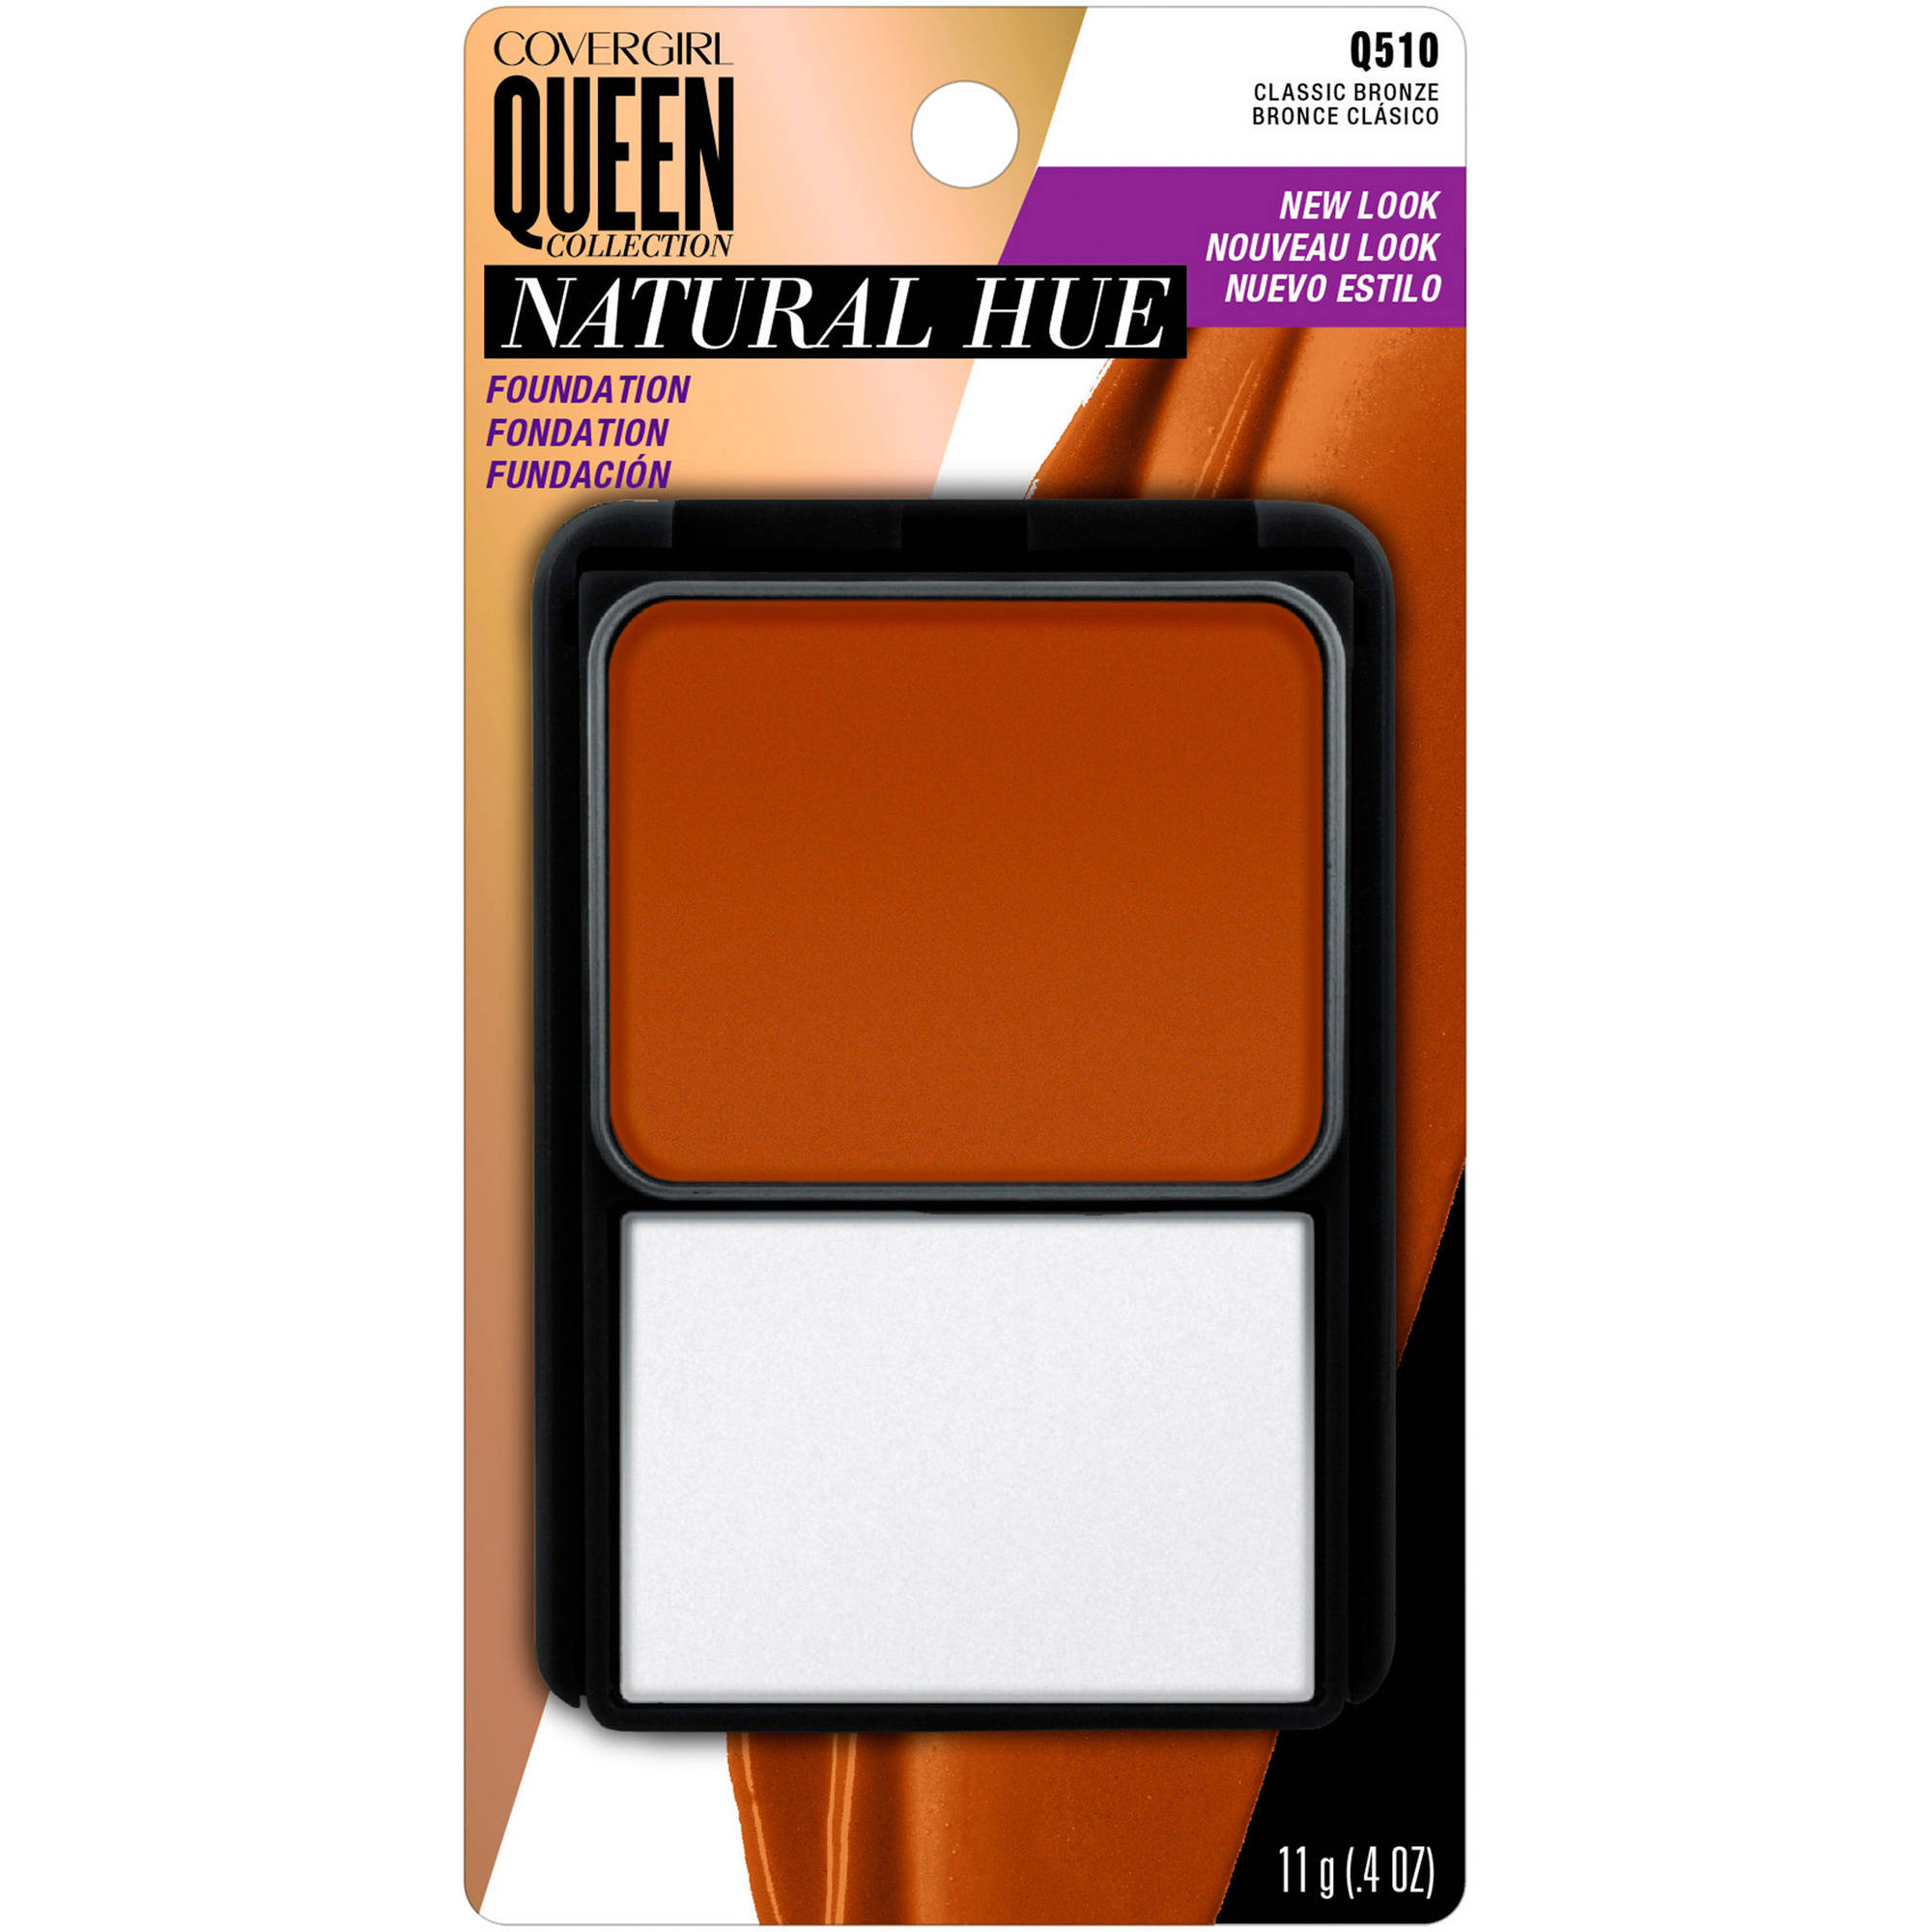 COVERGIRL Queen Natural Hue Compact Foundation, Classic Bronze 510, 0.4 oz